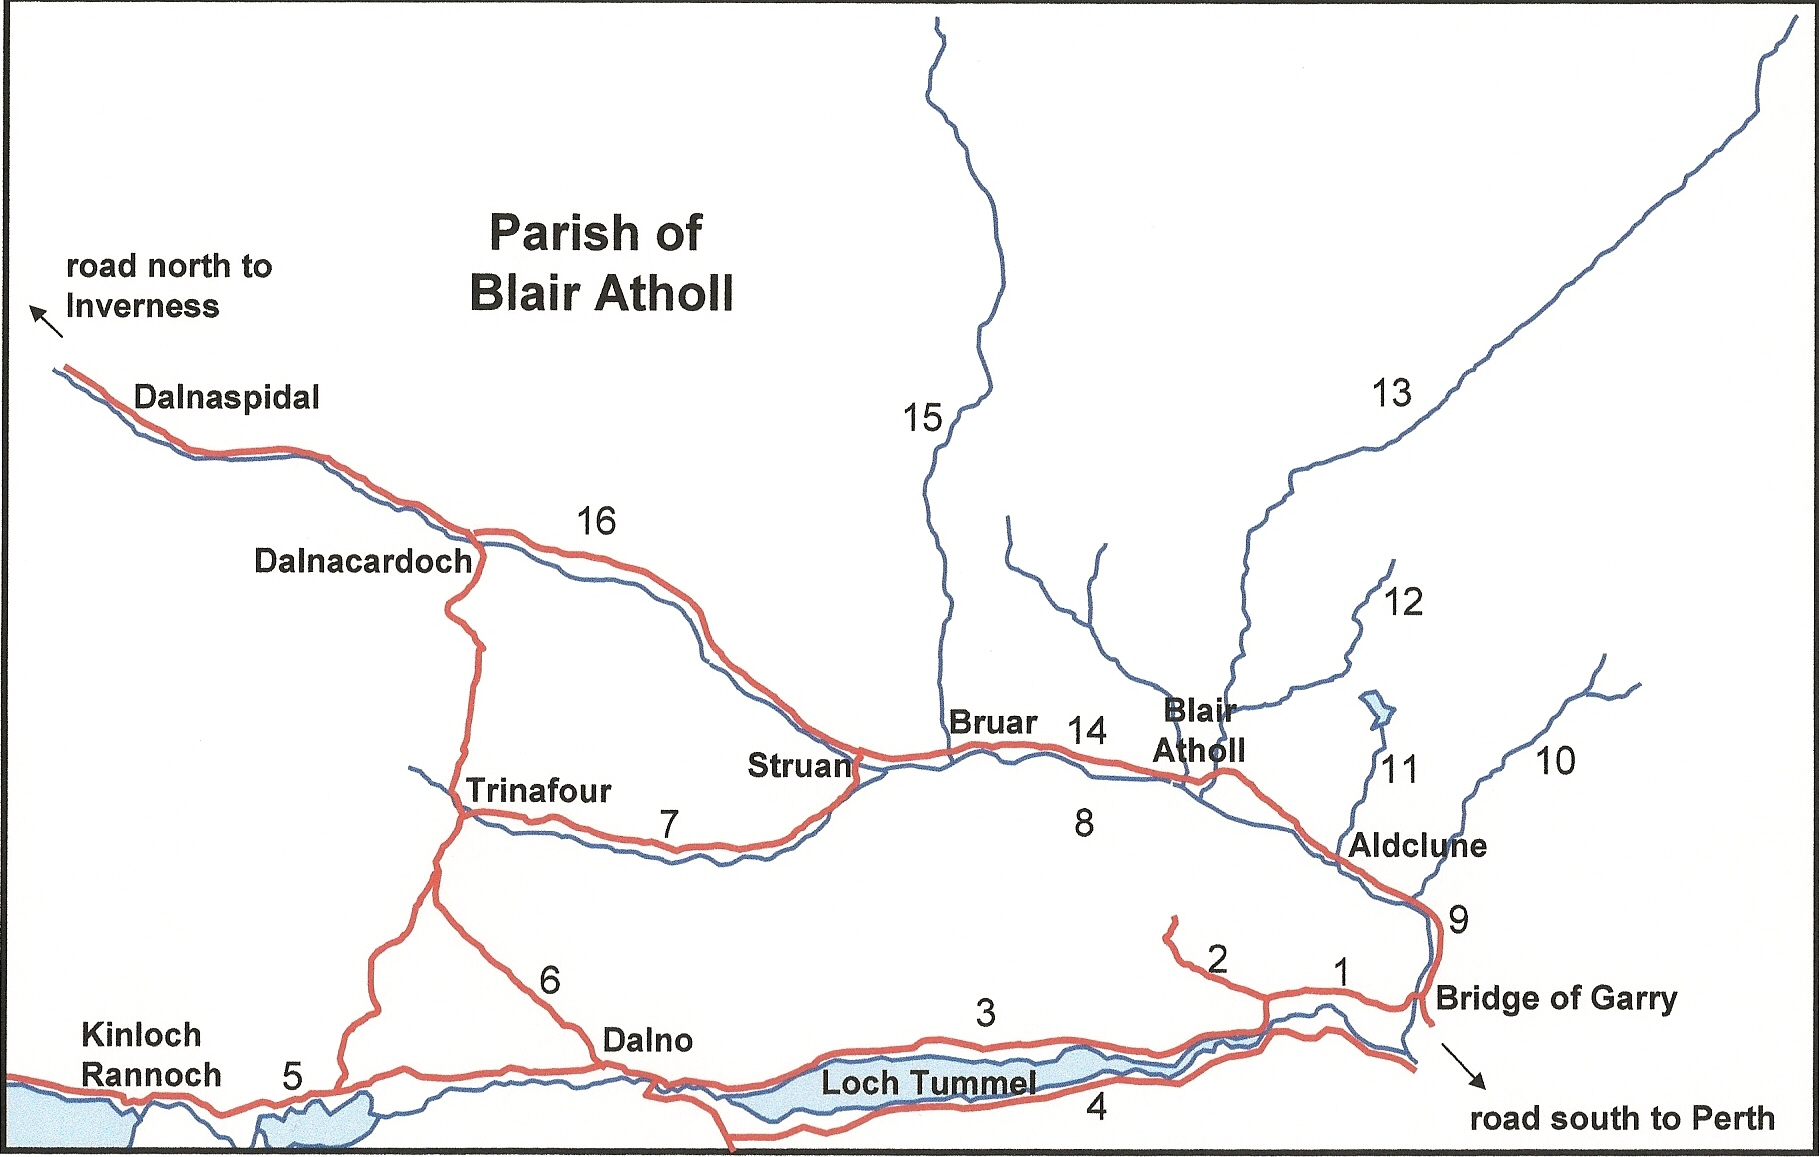 Blair Atholl Parish